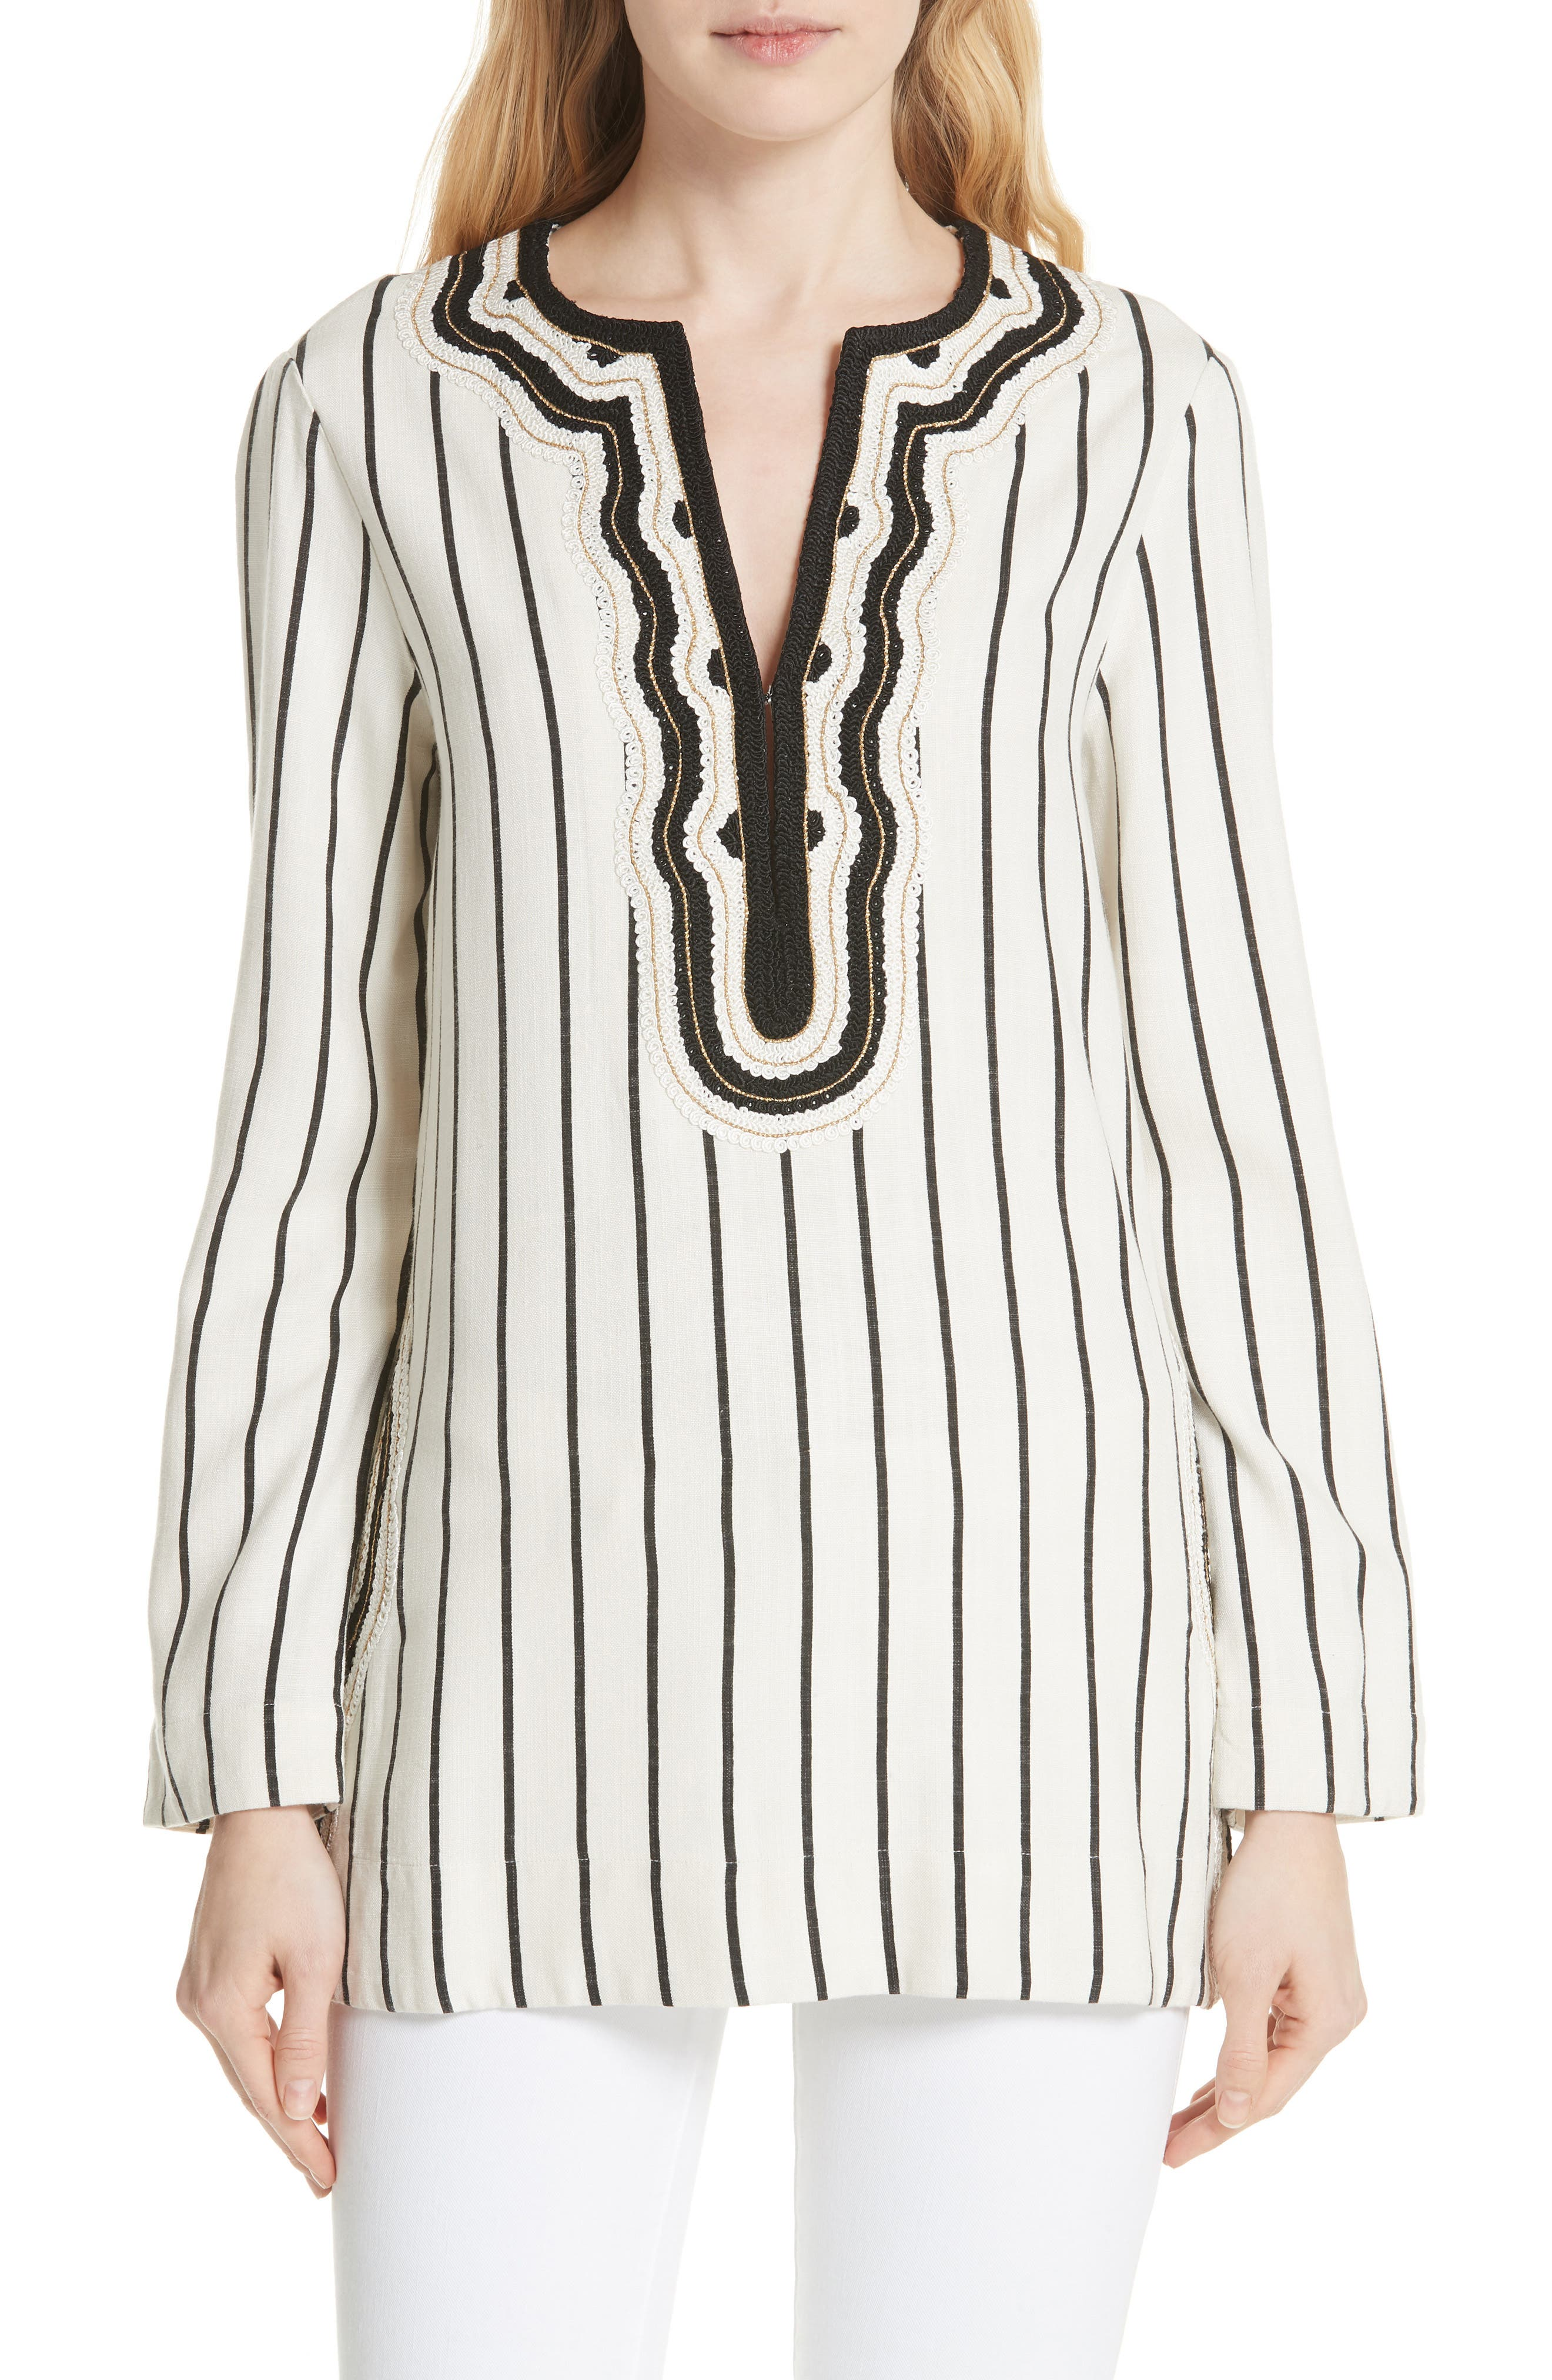 Tory Embellished Stripe Tunic,                         Main,                         color, New Ivory/ Black